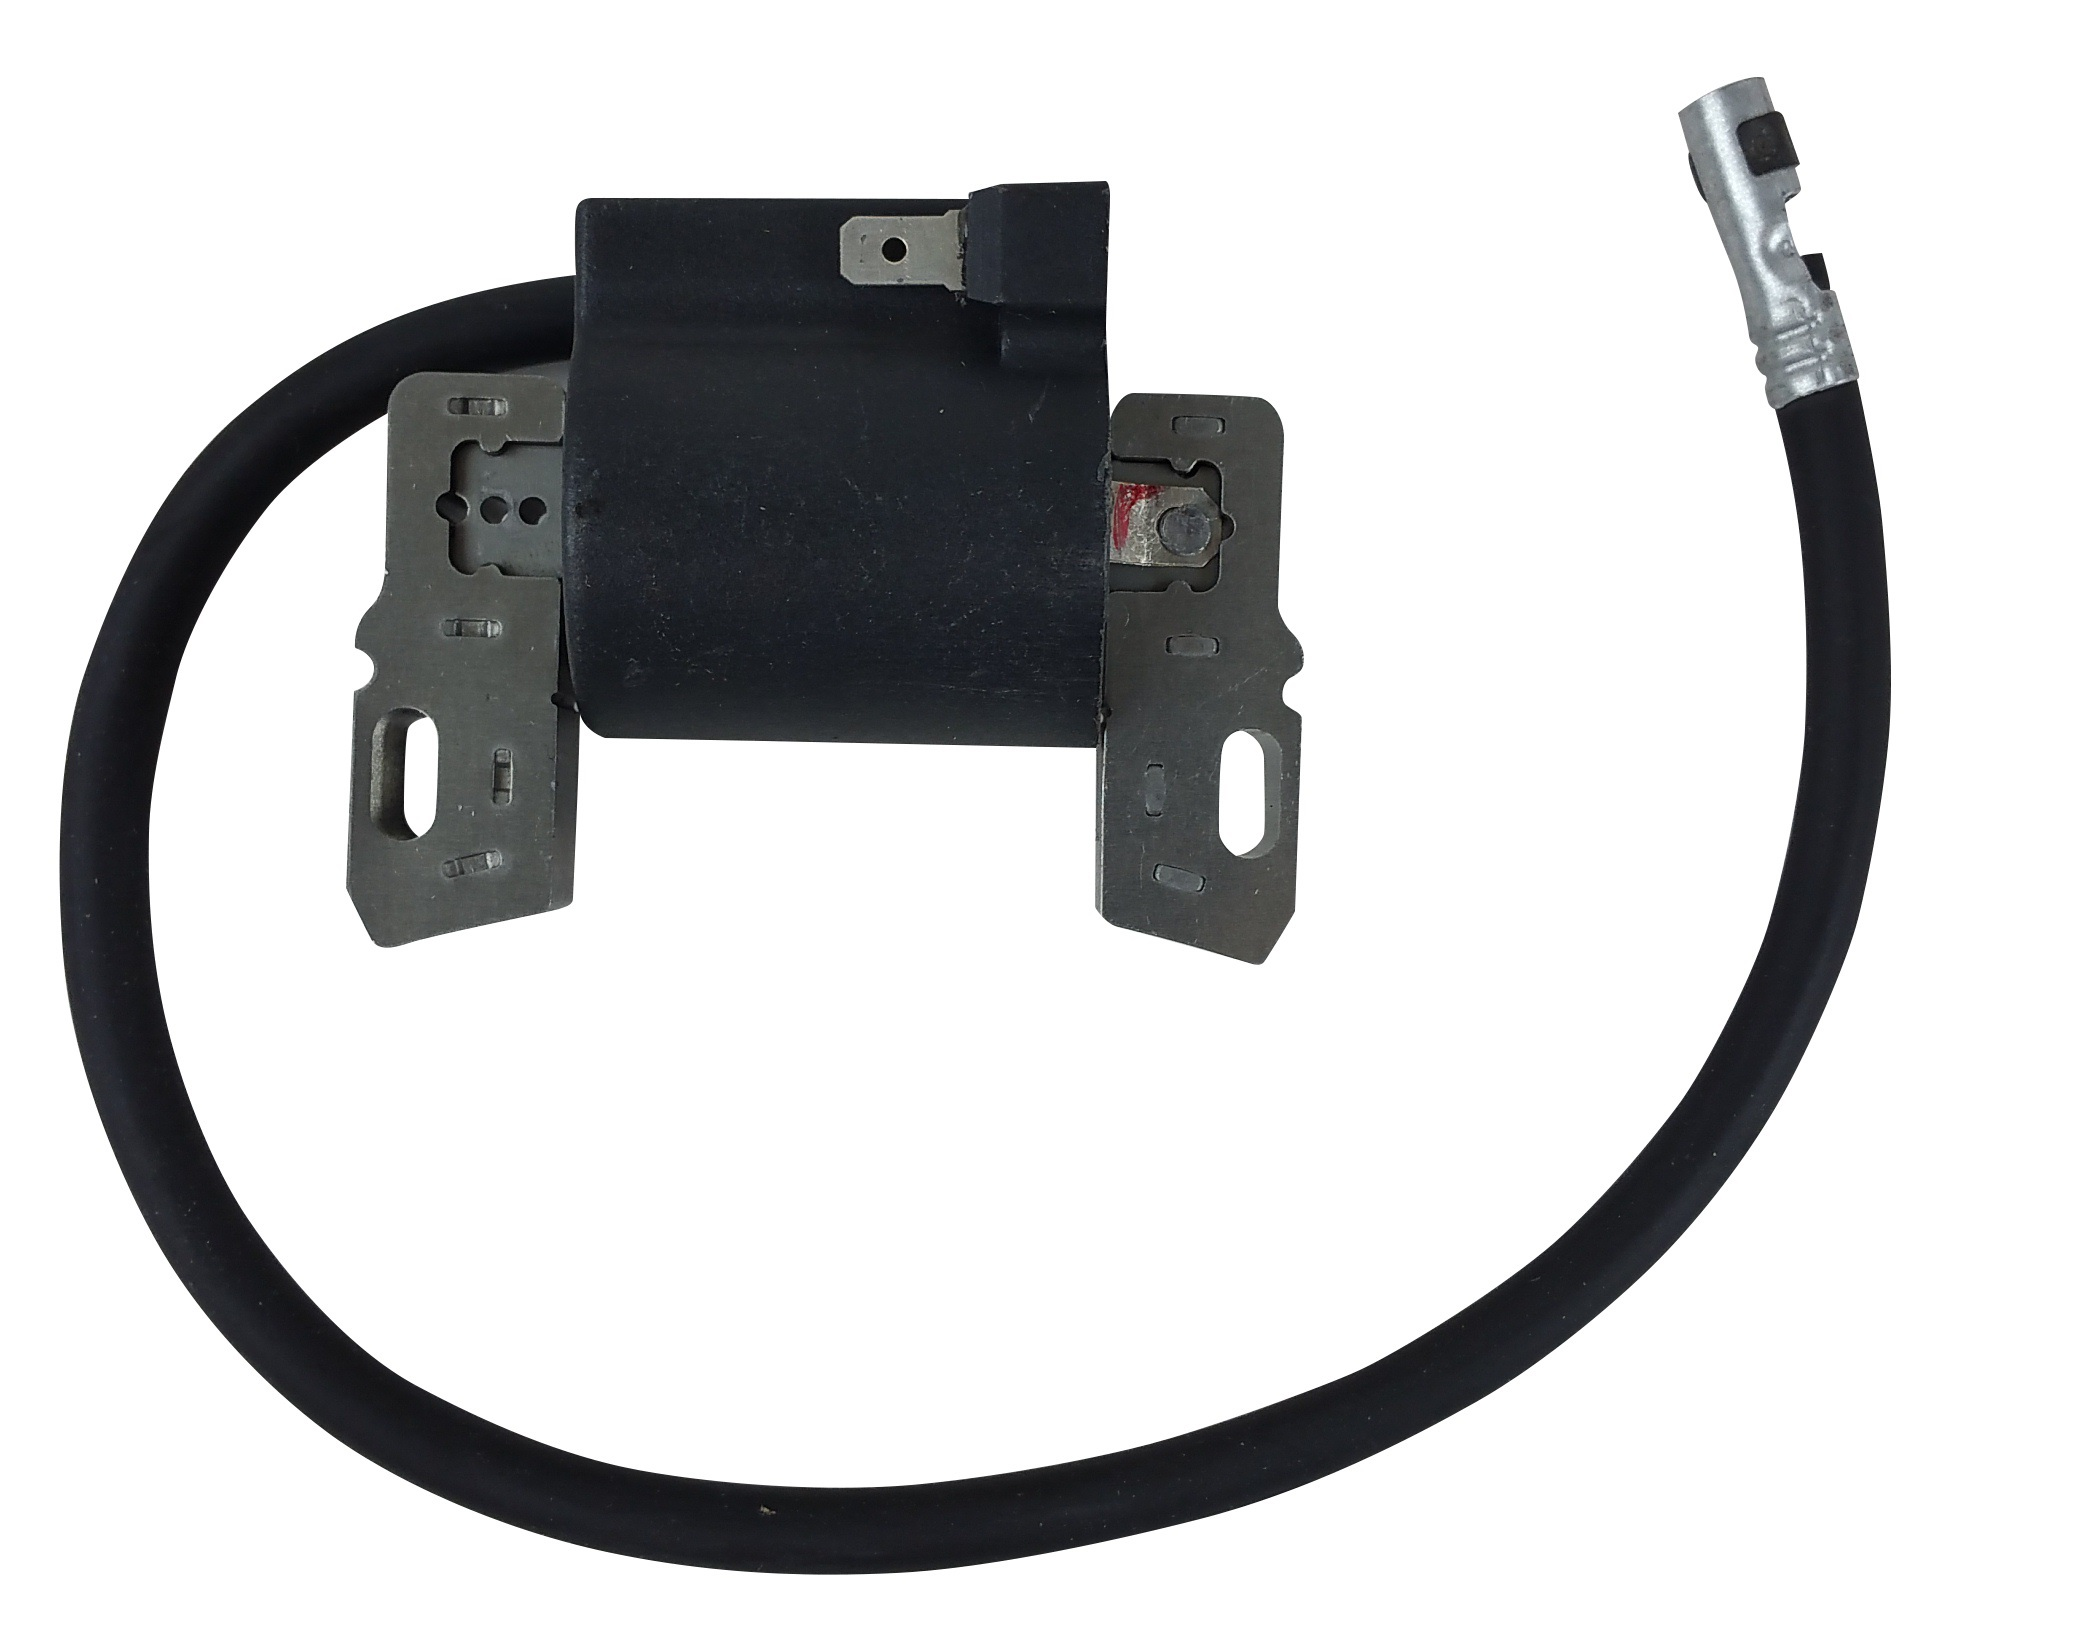 NEW BRIGGS AND STRATTON IGNITION COIL 398593 793281 IBS3001 440-409 496914